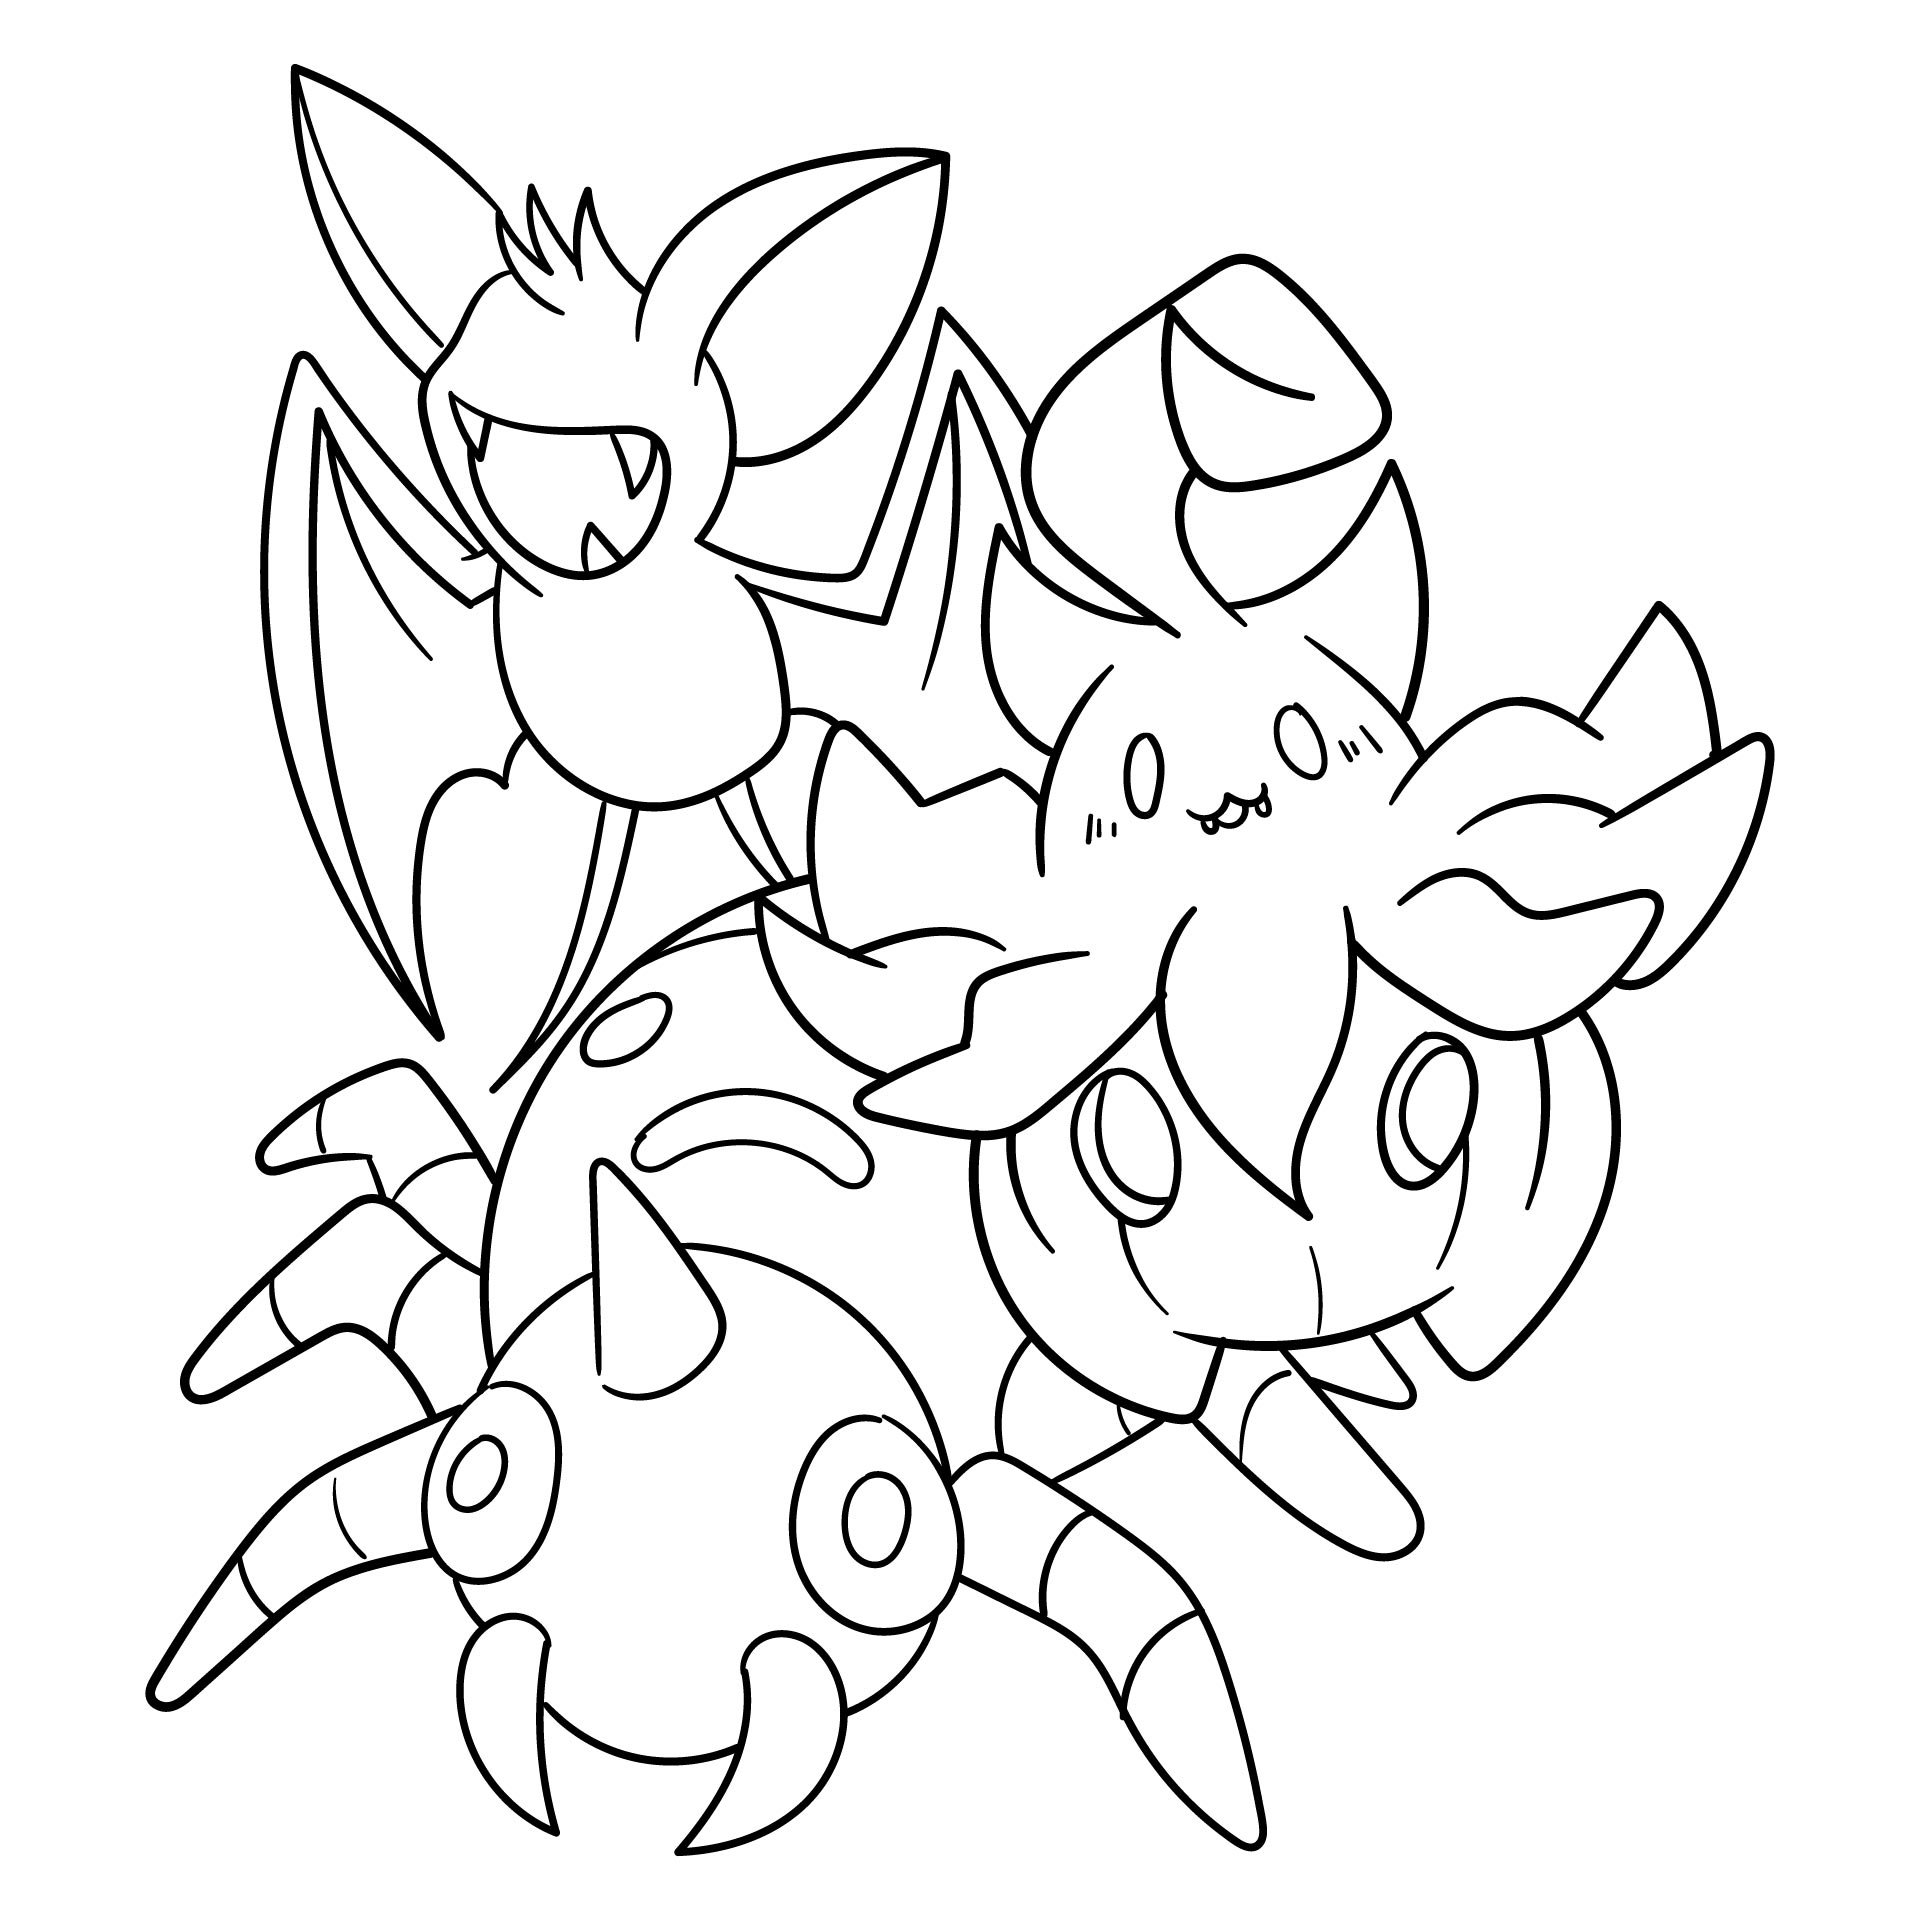 Halloween Printable Coloring Pages Jack O Lanterns, Spiders, Bats